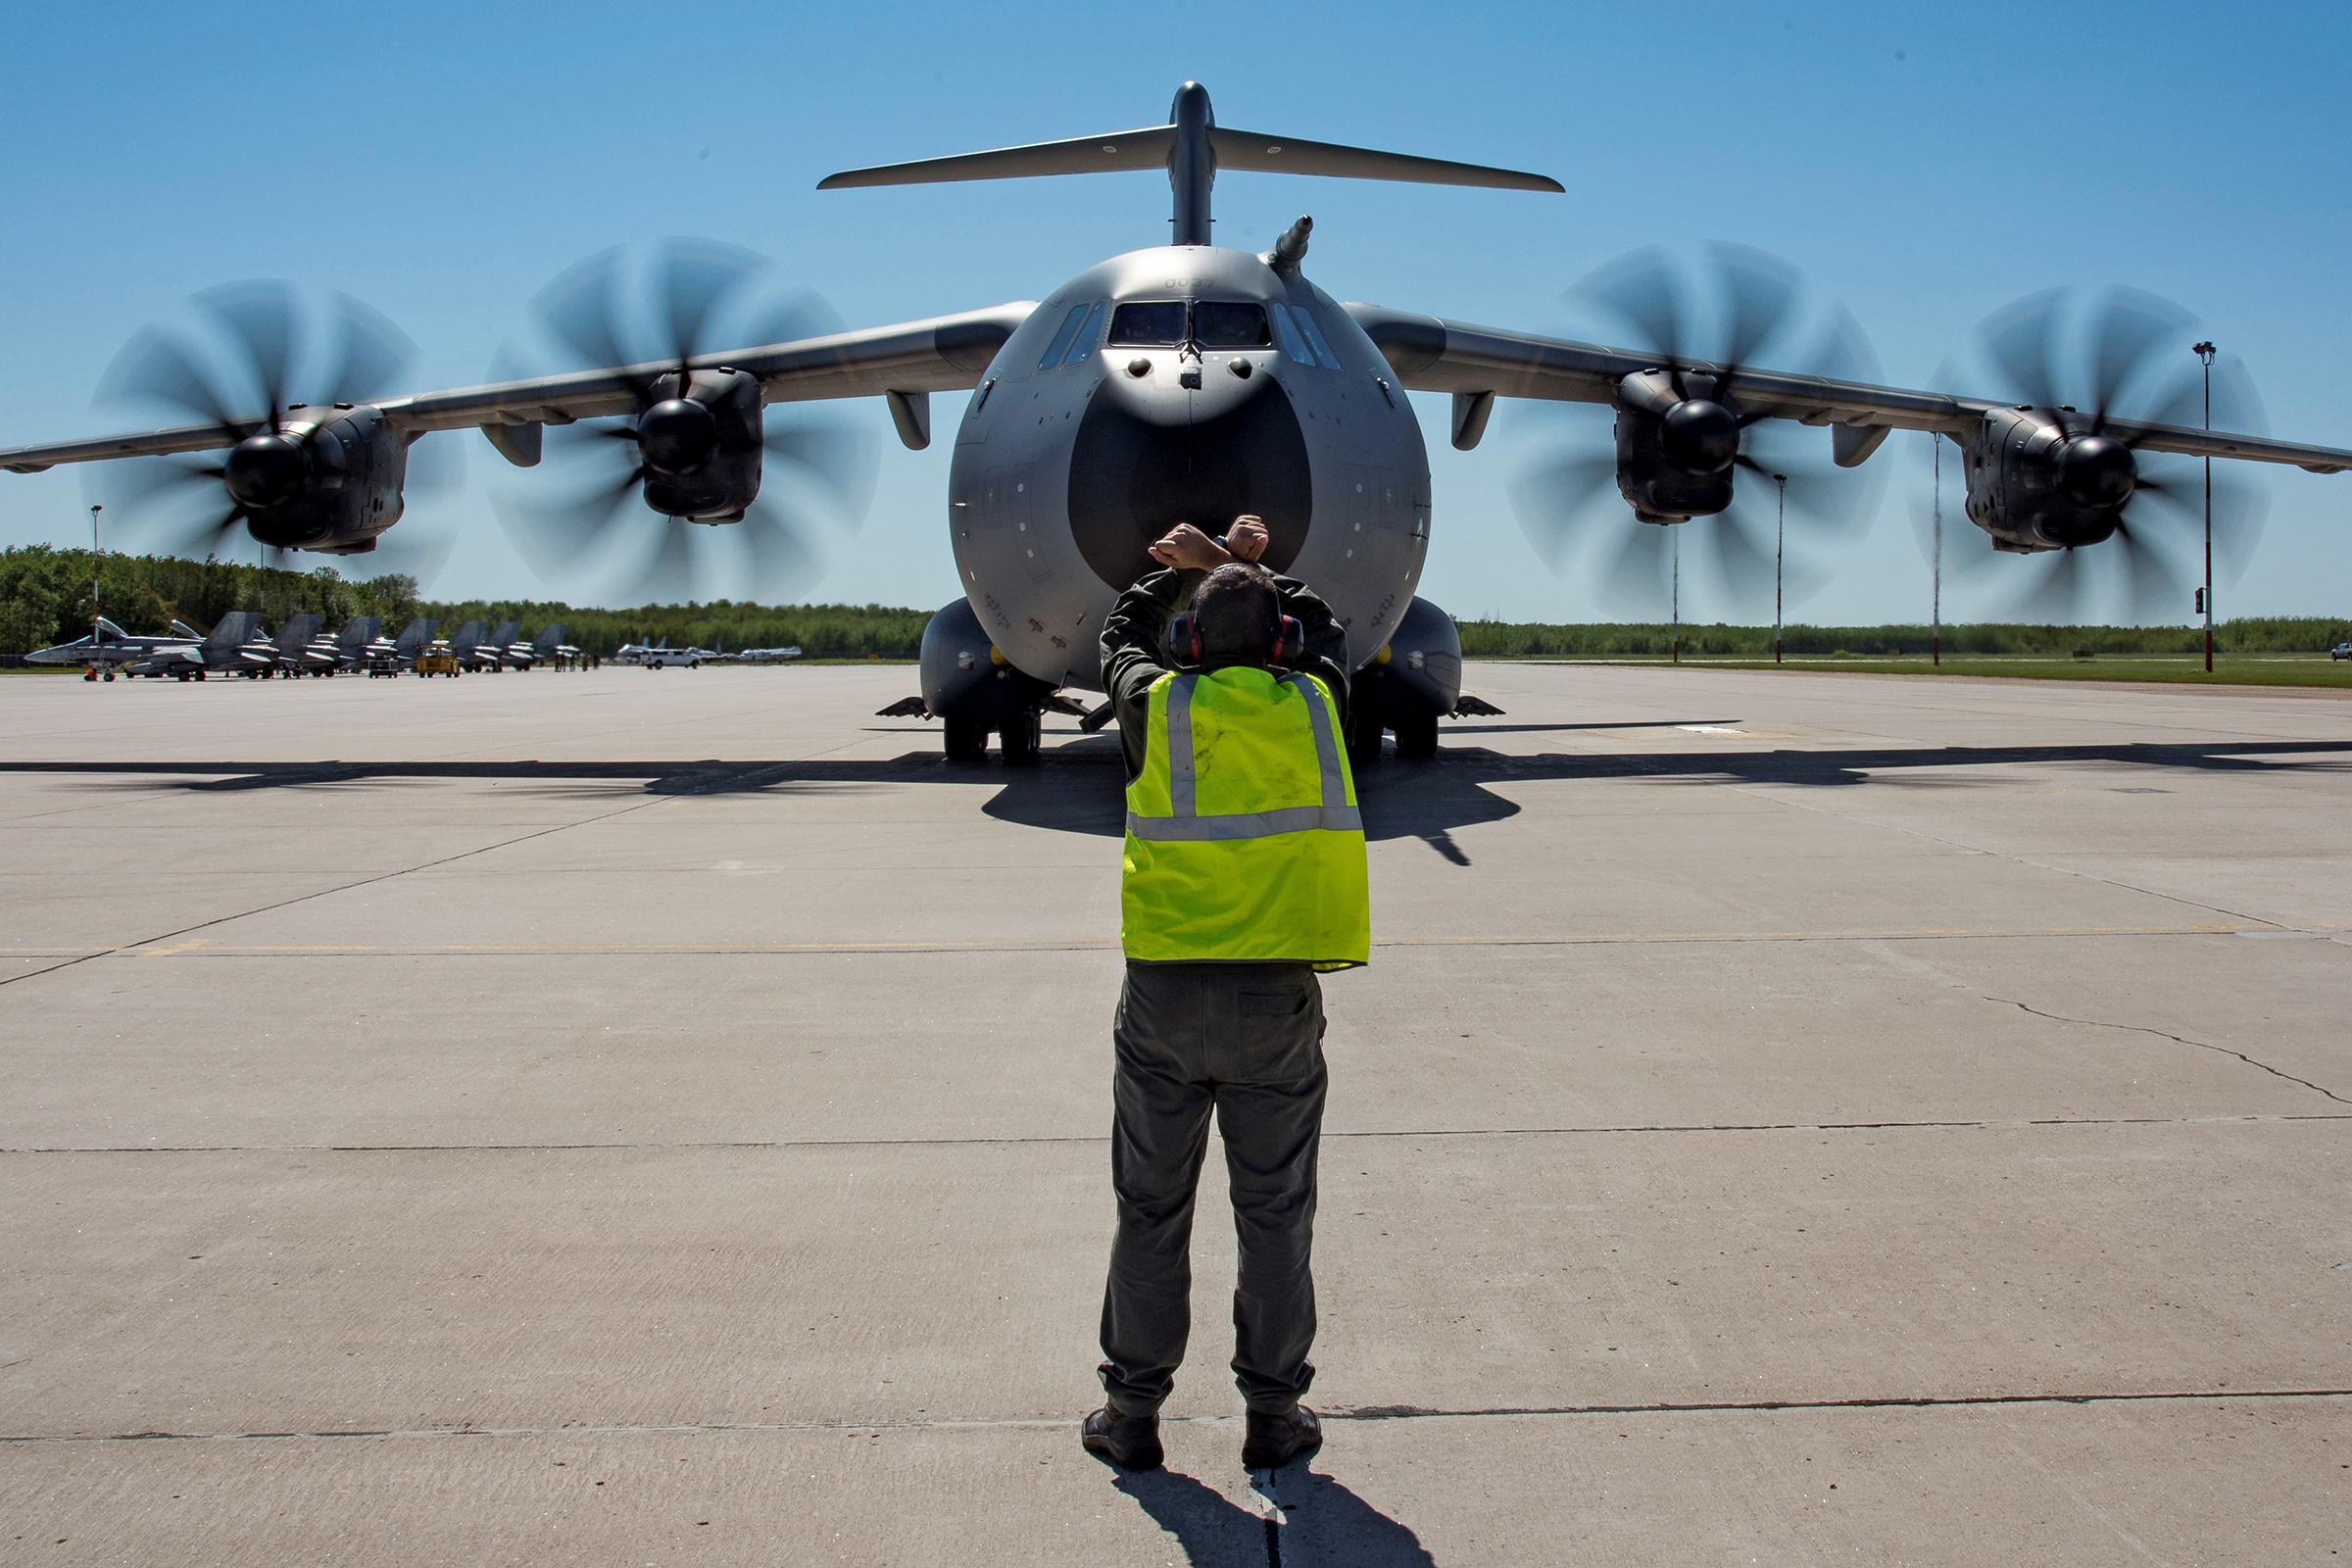 A French Air Force technician marshals a A400M Atlas aircraft after landing on the tarmac at 4 Wing Cold Lake, Alberta, during Exercise Maple Flag 50 on May 29, 2017. PHOTO: Corporal Justin Roy, CK07-2017-0460-005